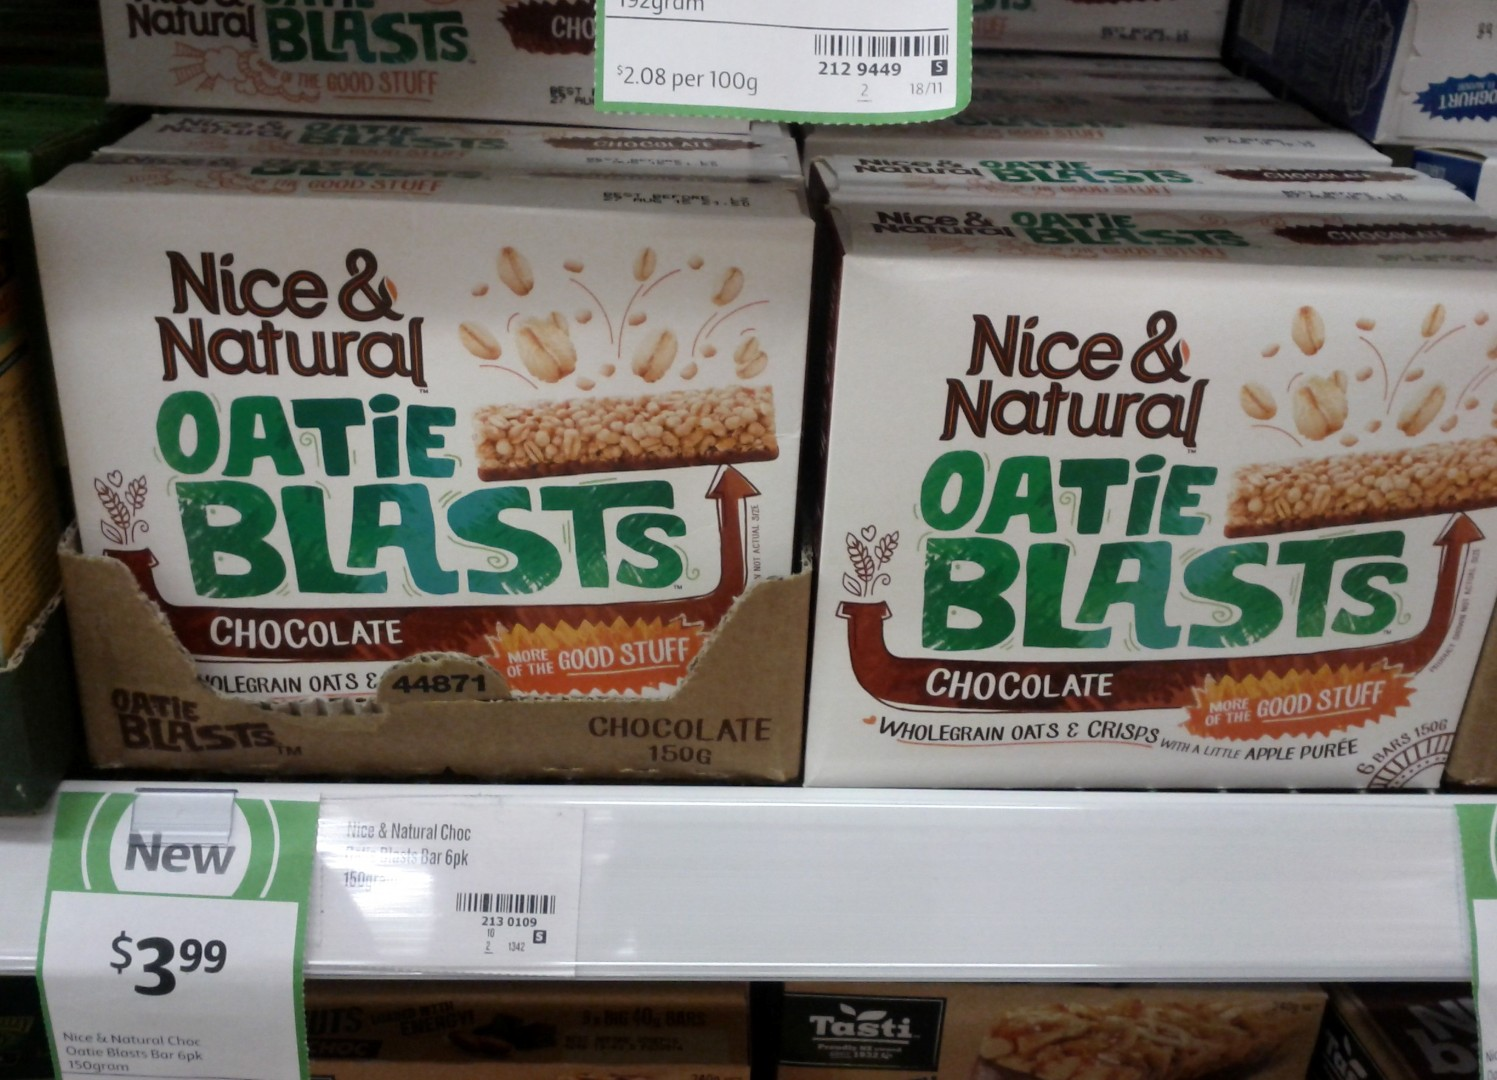 Nice & Natural 150g Oatie Blasts Chocolate